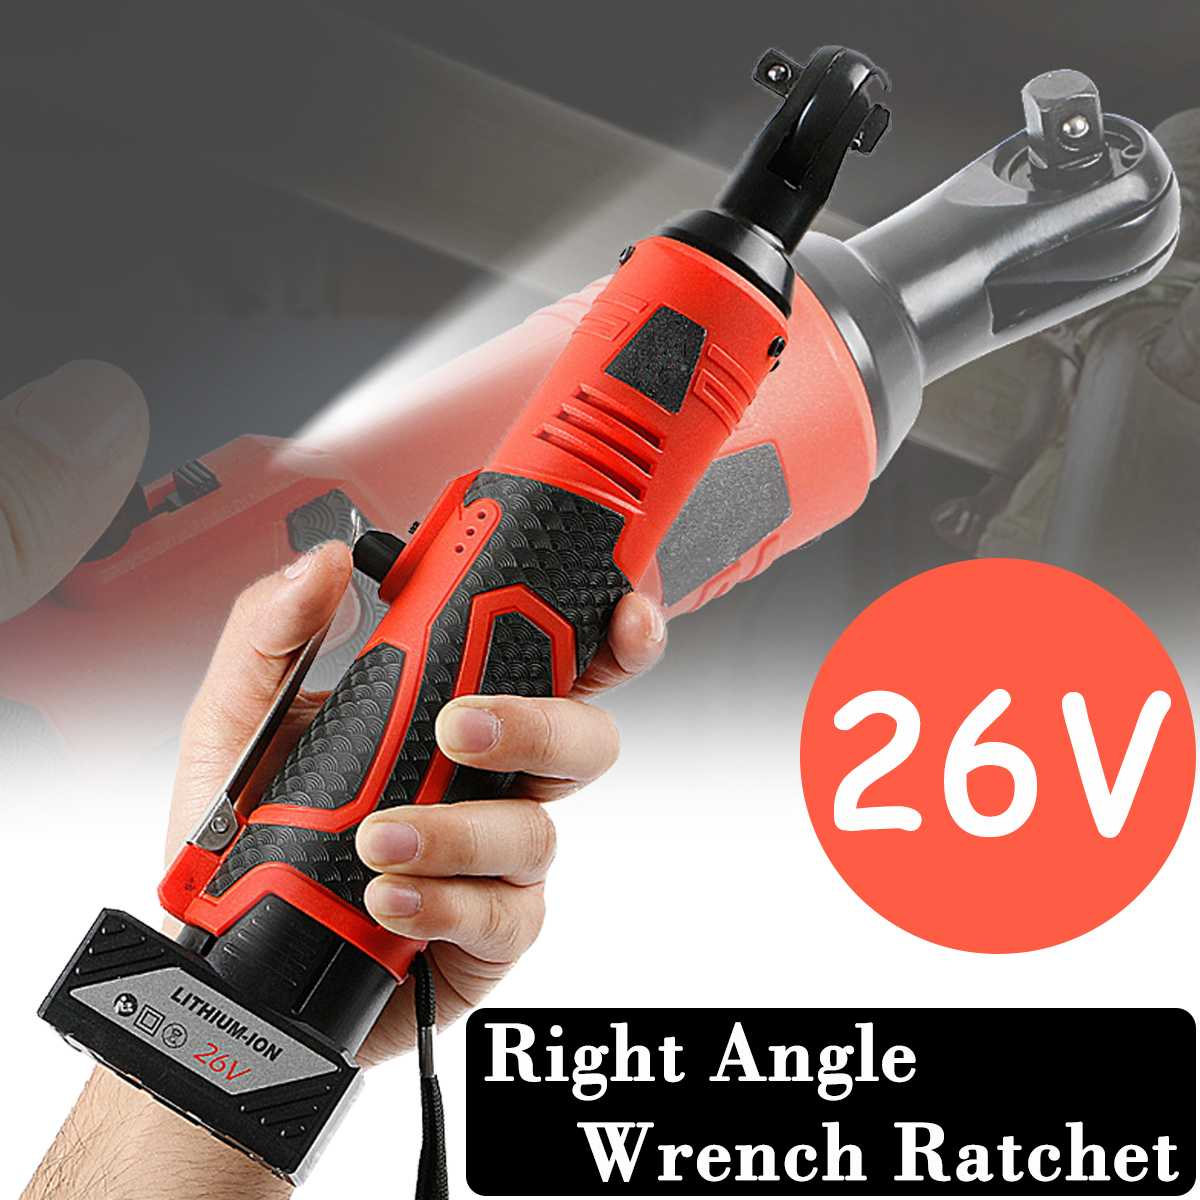 26V Cordless Electric Wrench 3 8 Inch Electric Ratchet Wrench Lithium Battery Right Angle Wrench with